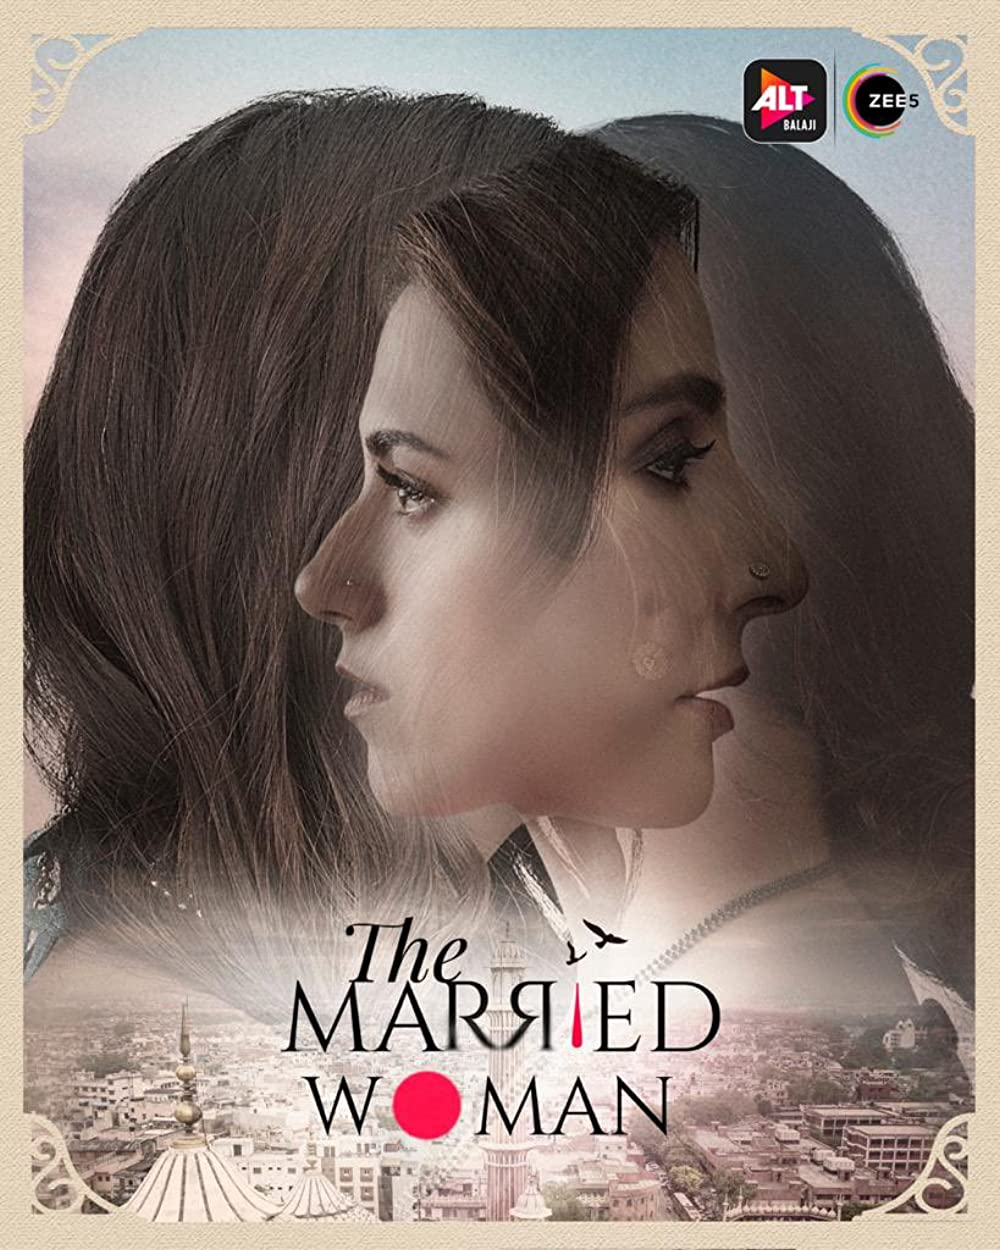 The Married Woman 2021 S01 Hindi Complete ALTBalaji Web Series  480p | 720p HDRip 975MB |  2.1GB Download